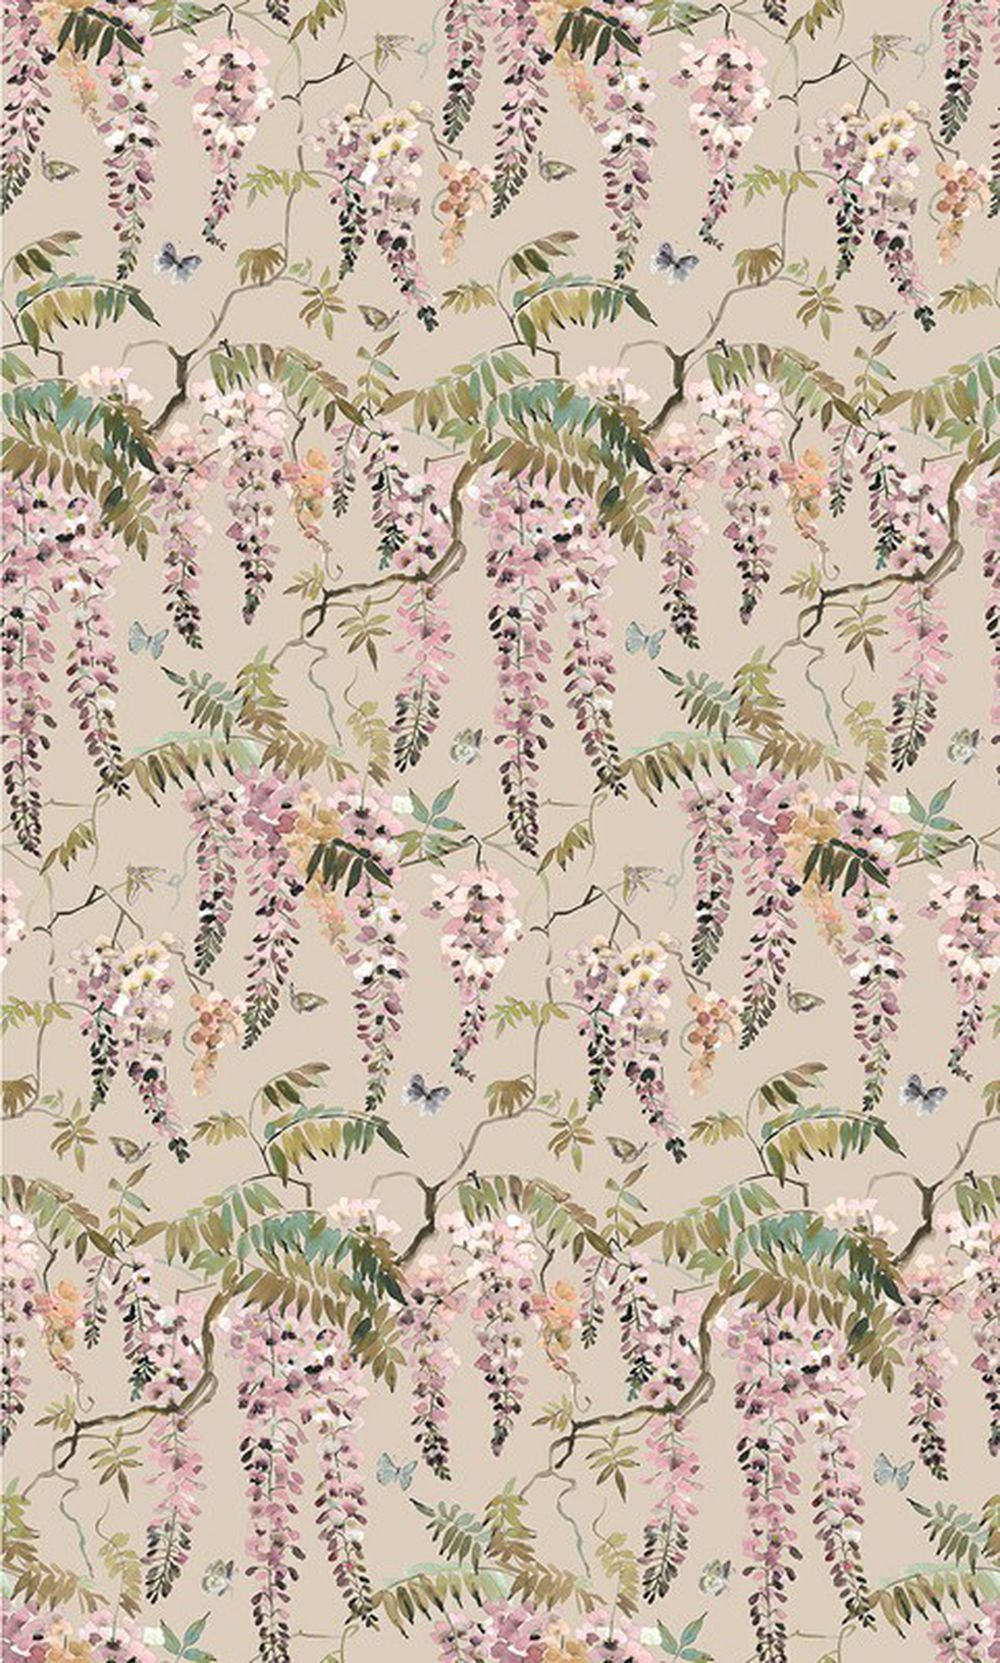 Photo of the fabric Papillon Powder swatch by Mokum. Use for Curtains, Upholstery Light Duty, Accessory, Top of Bed. Style of Animals And Birds, Floral And Botannical, Pattern, Print